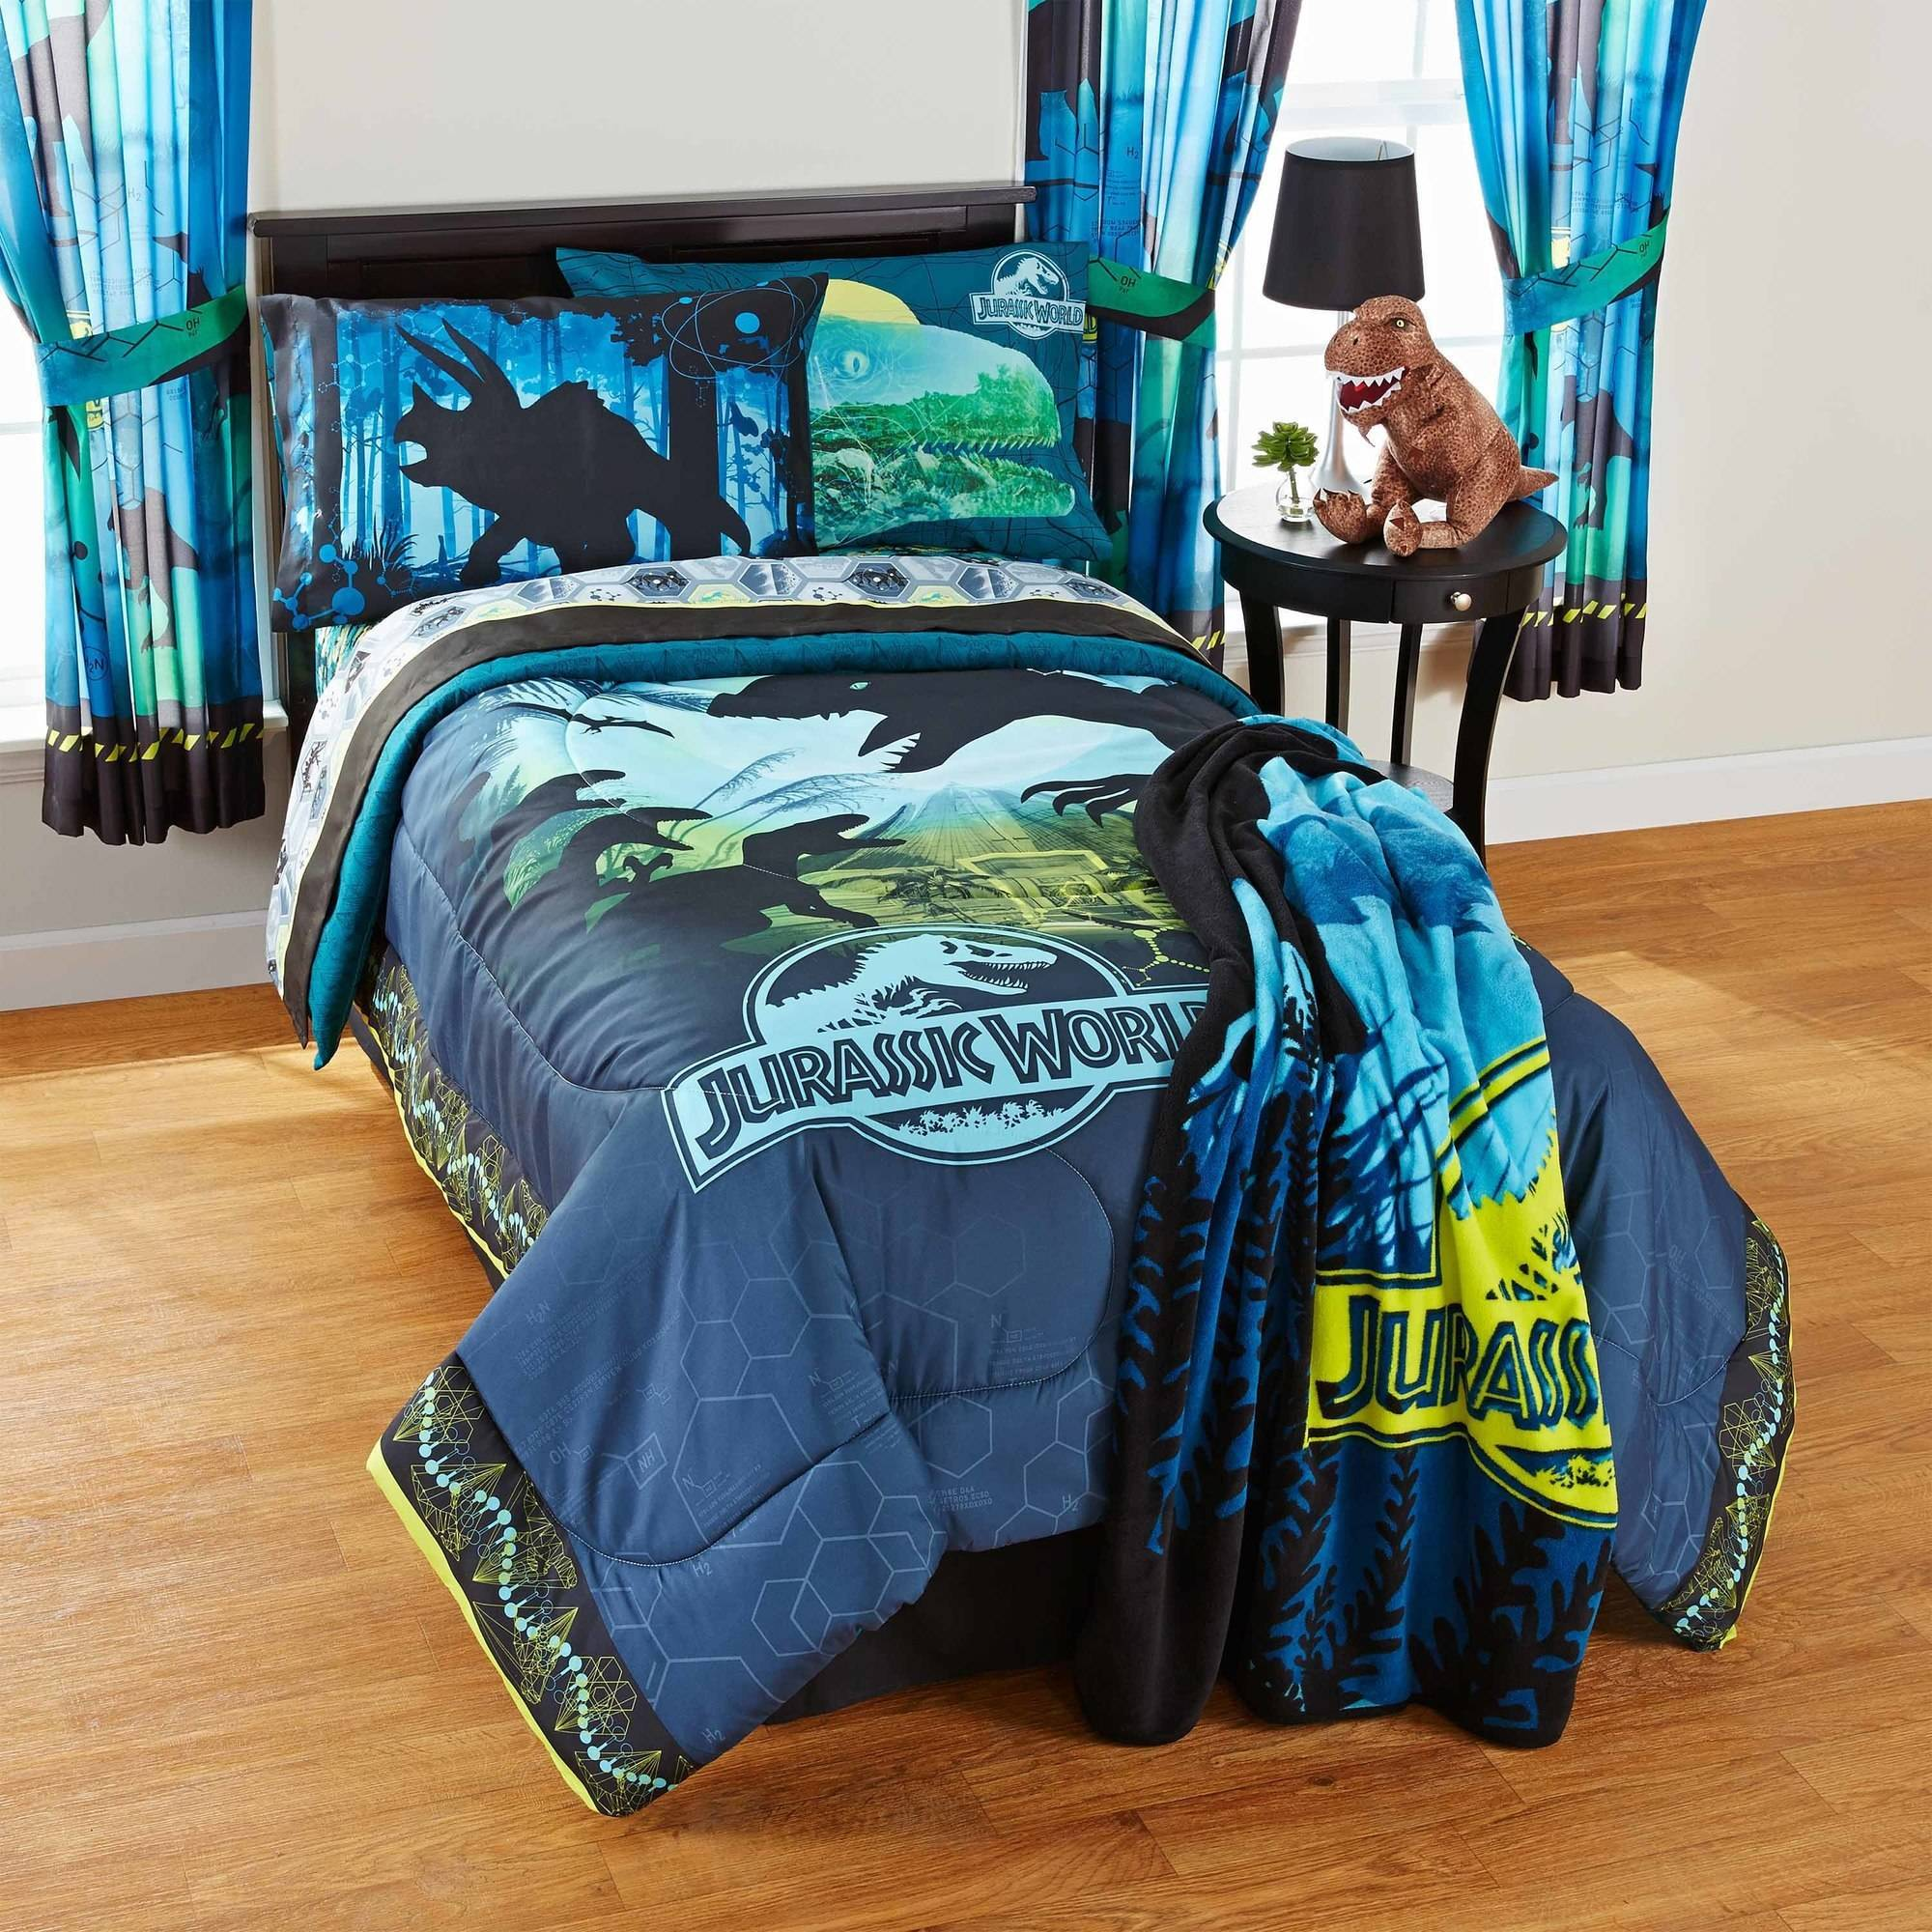 bedding great navy aqua set mainstays comforters and full ebay design marvelous medallion home blue bag in a bed comforter turquoise twin